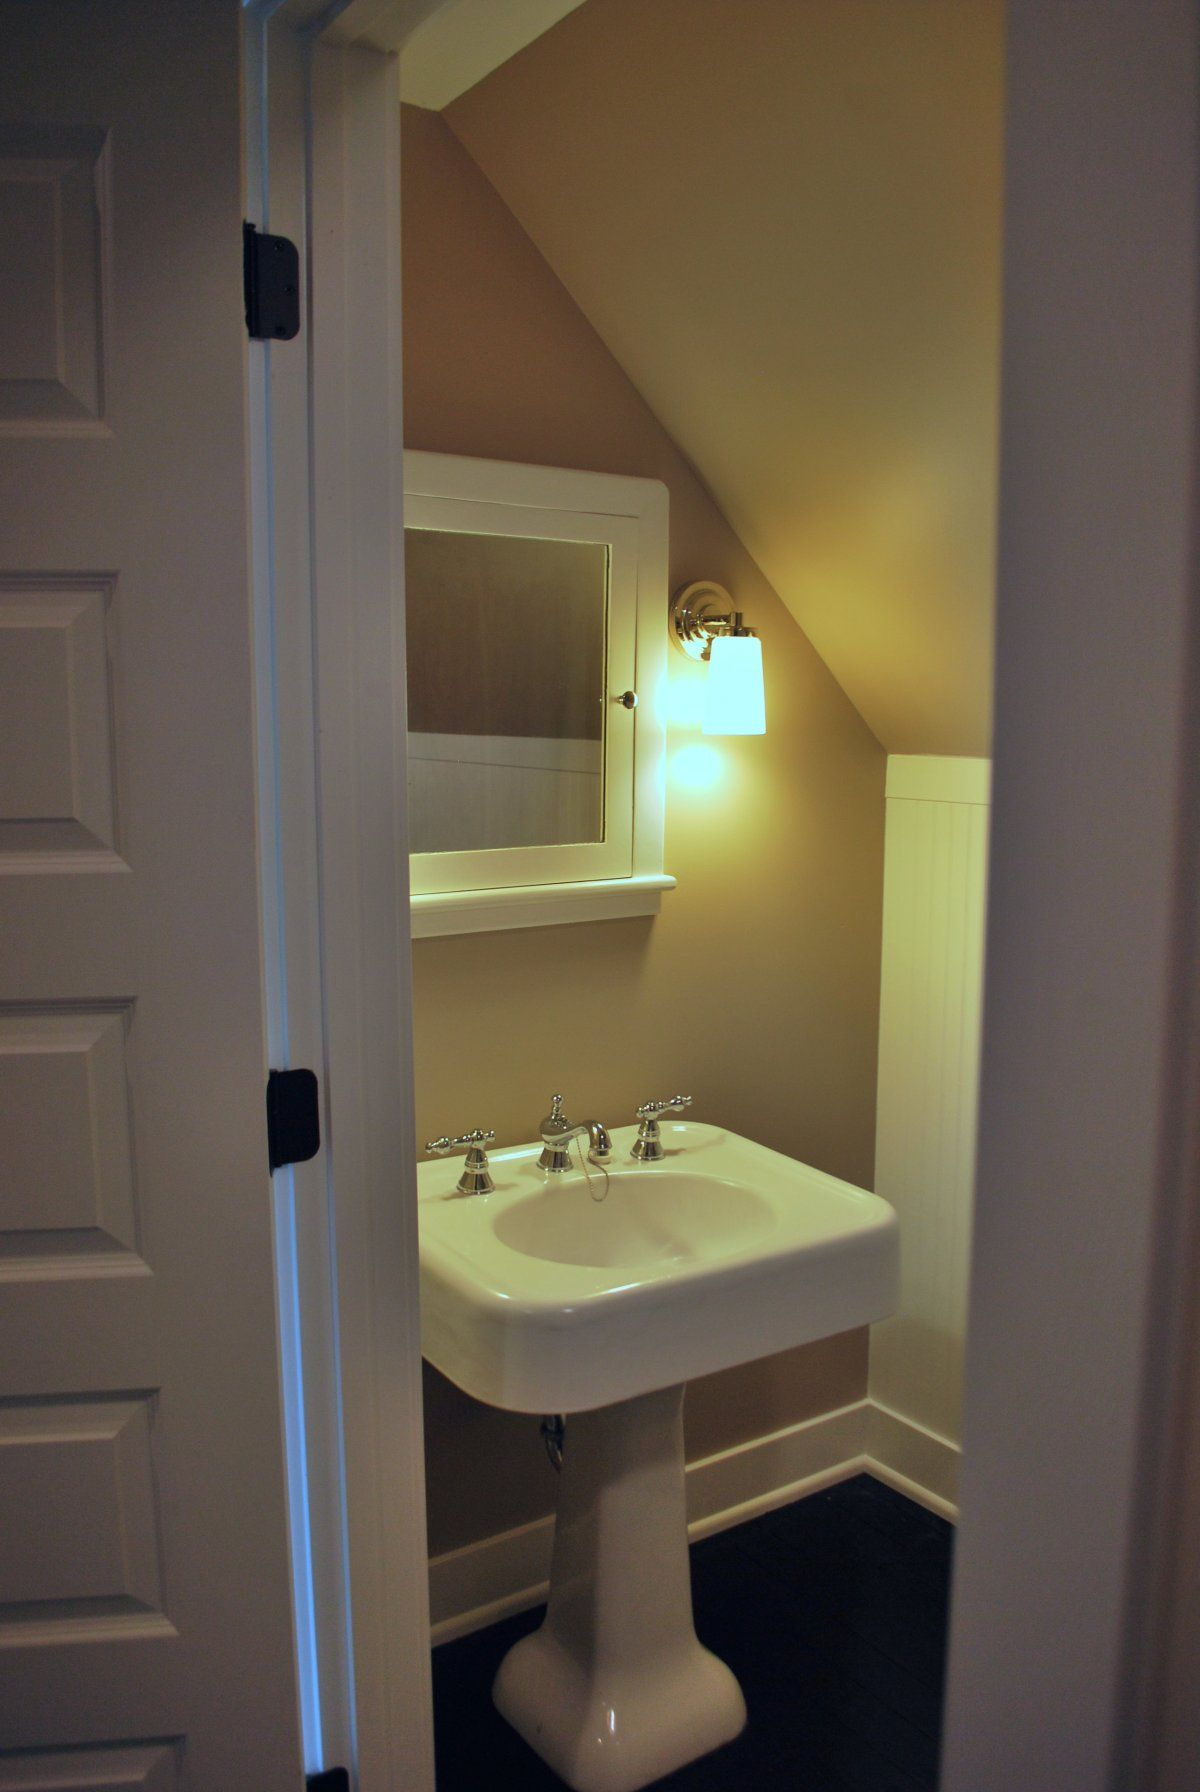 Bedroom Small Attic Bathroom Design With Wall Mounted Lamps Ideas Marvelous Sloping Celling